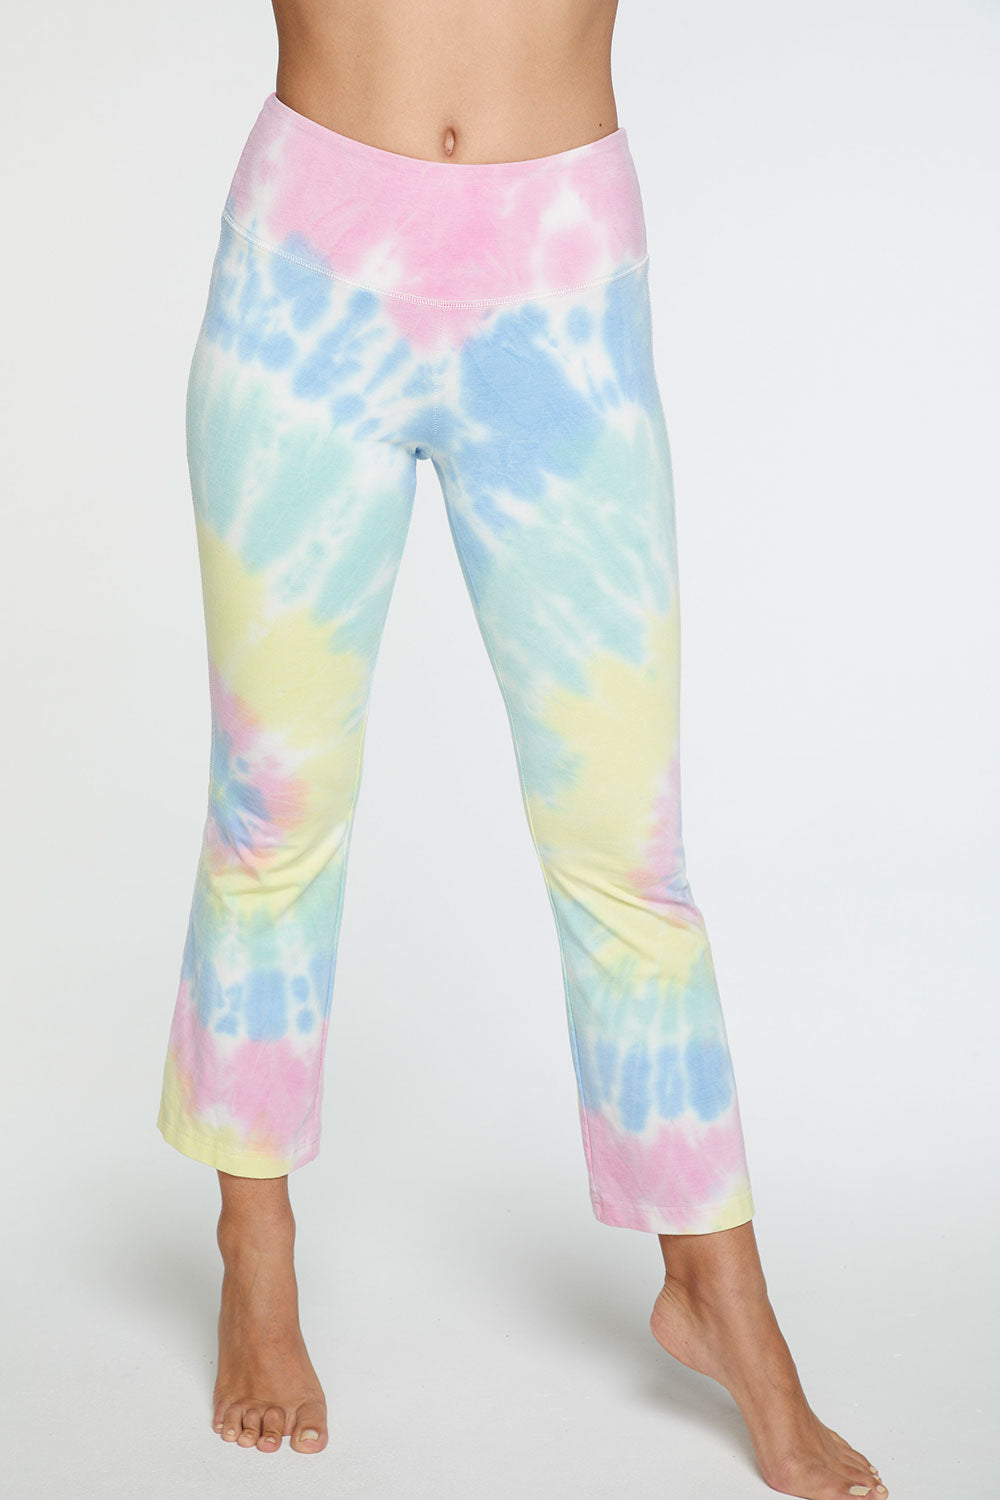 Quadrablend Flared Lounge Pant in Tie Dye